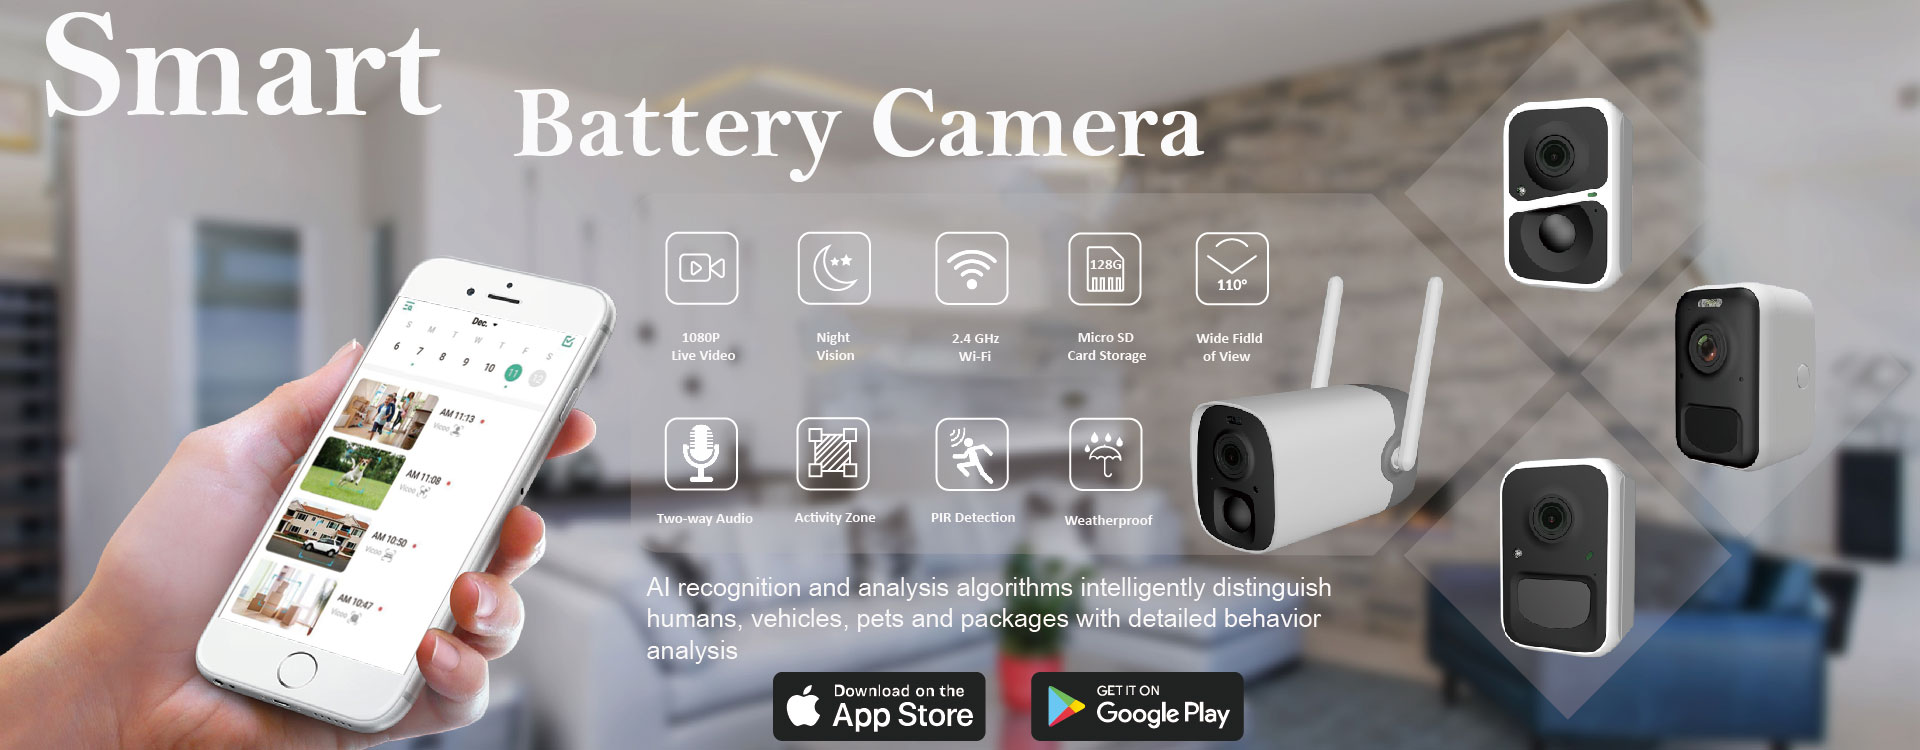 Wireless Battery Powered, Outdoor Smart Home Camera & Magnet